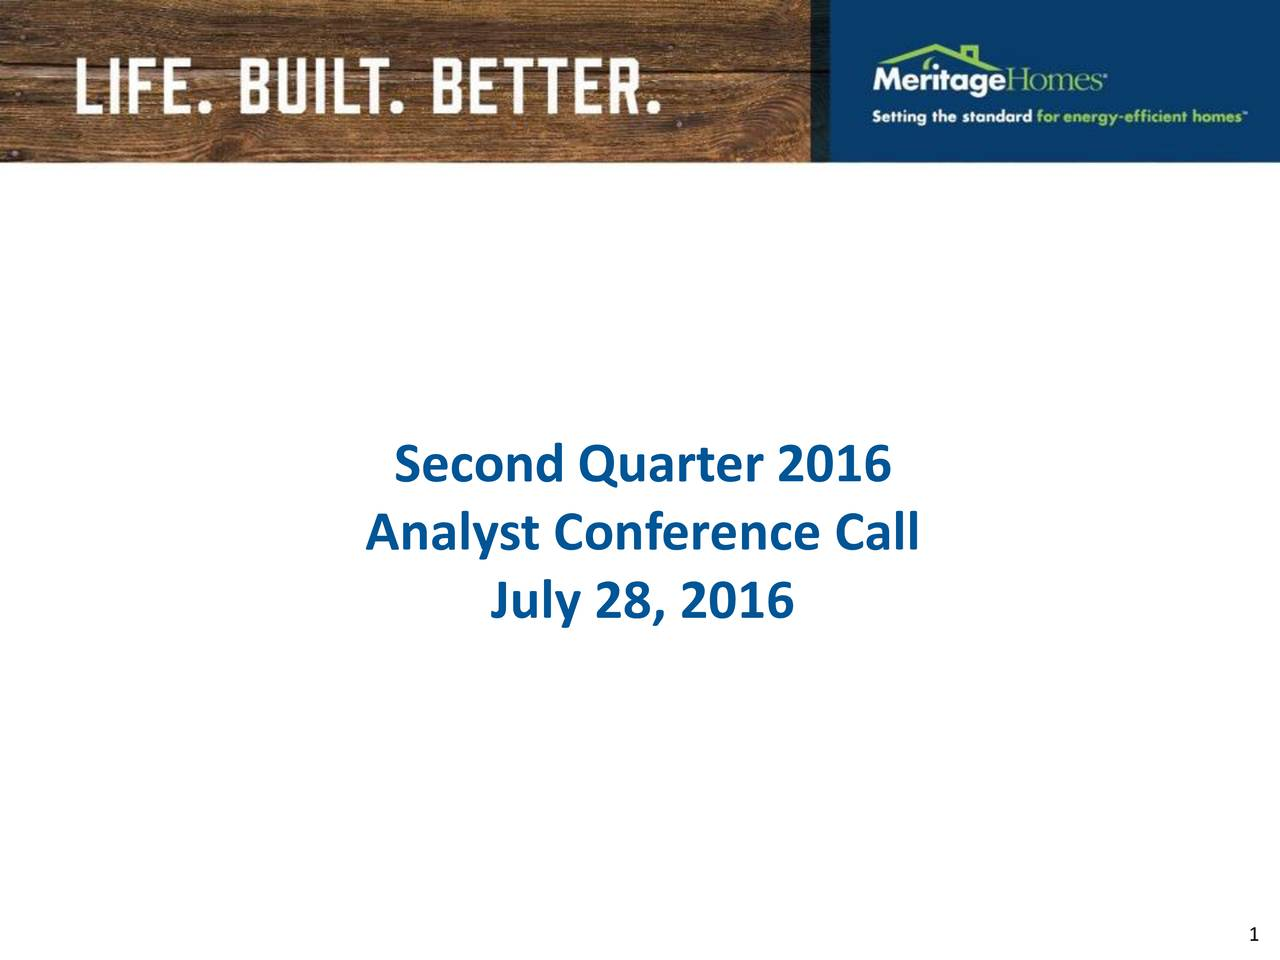 Analyst Conference Call July 28, 2016